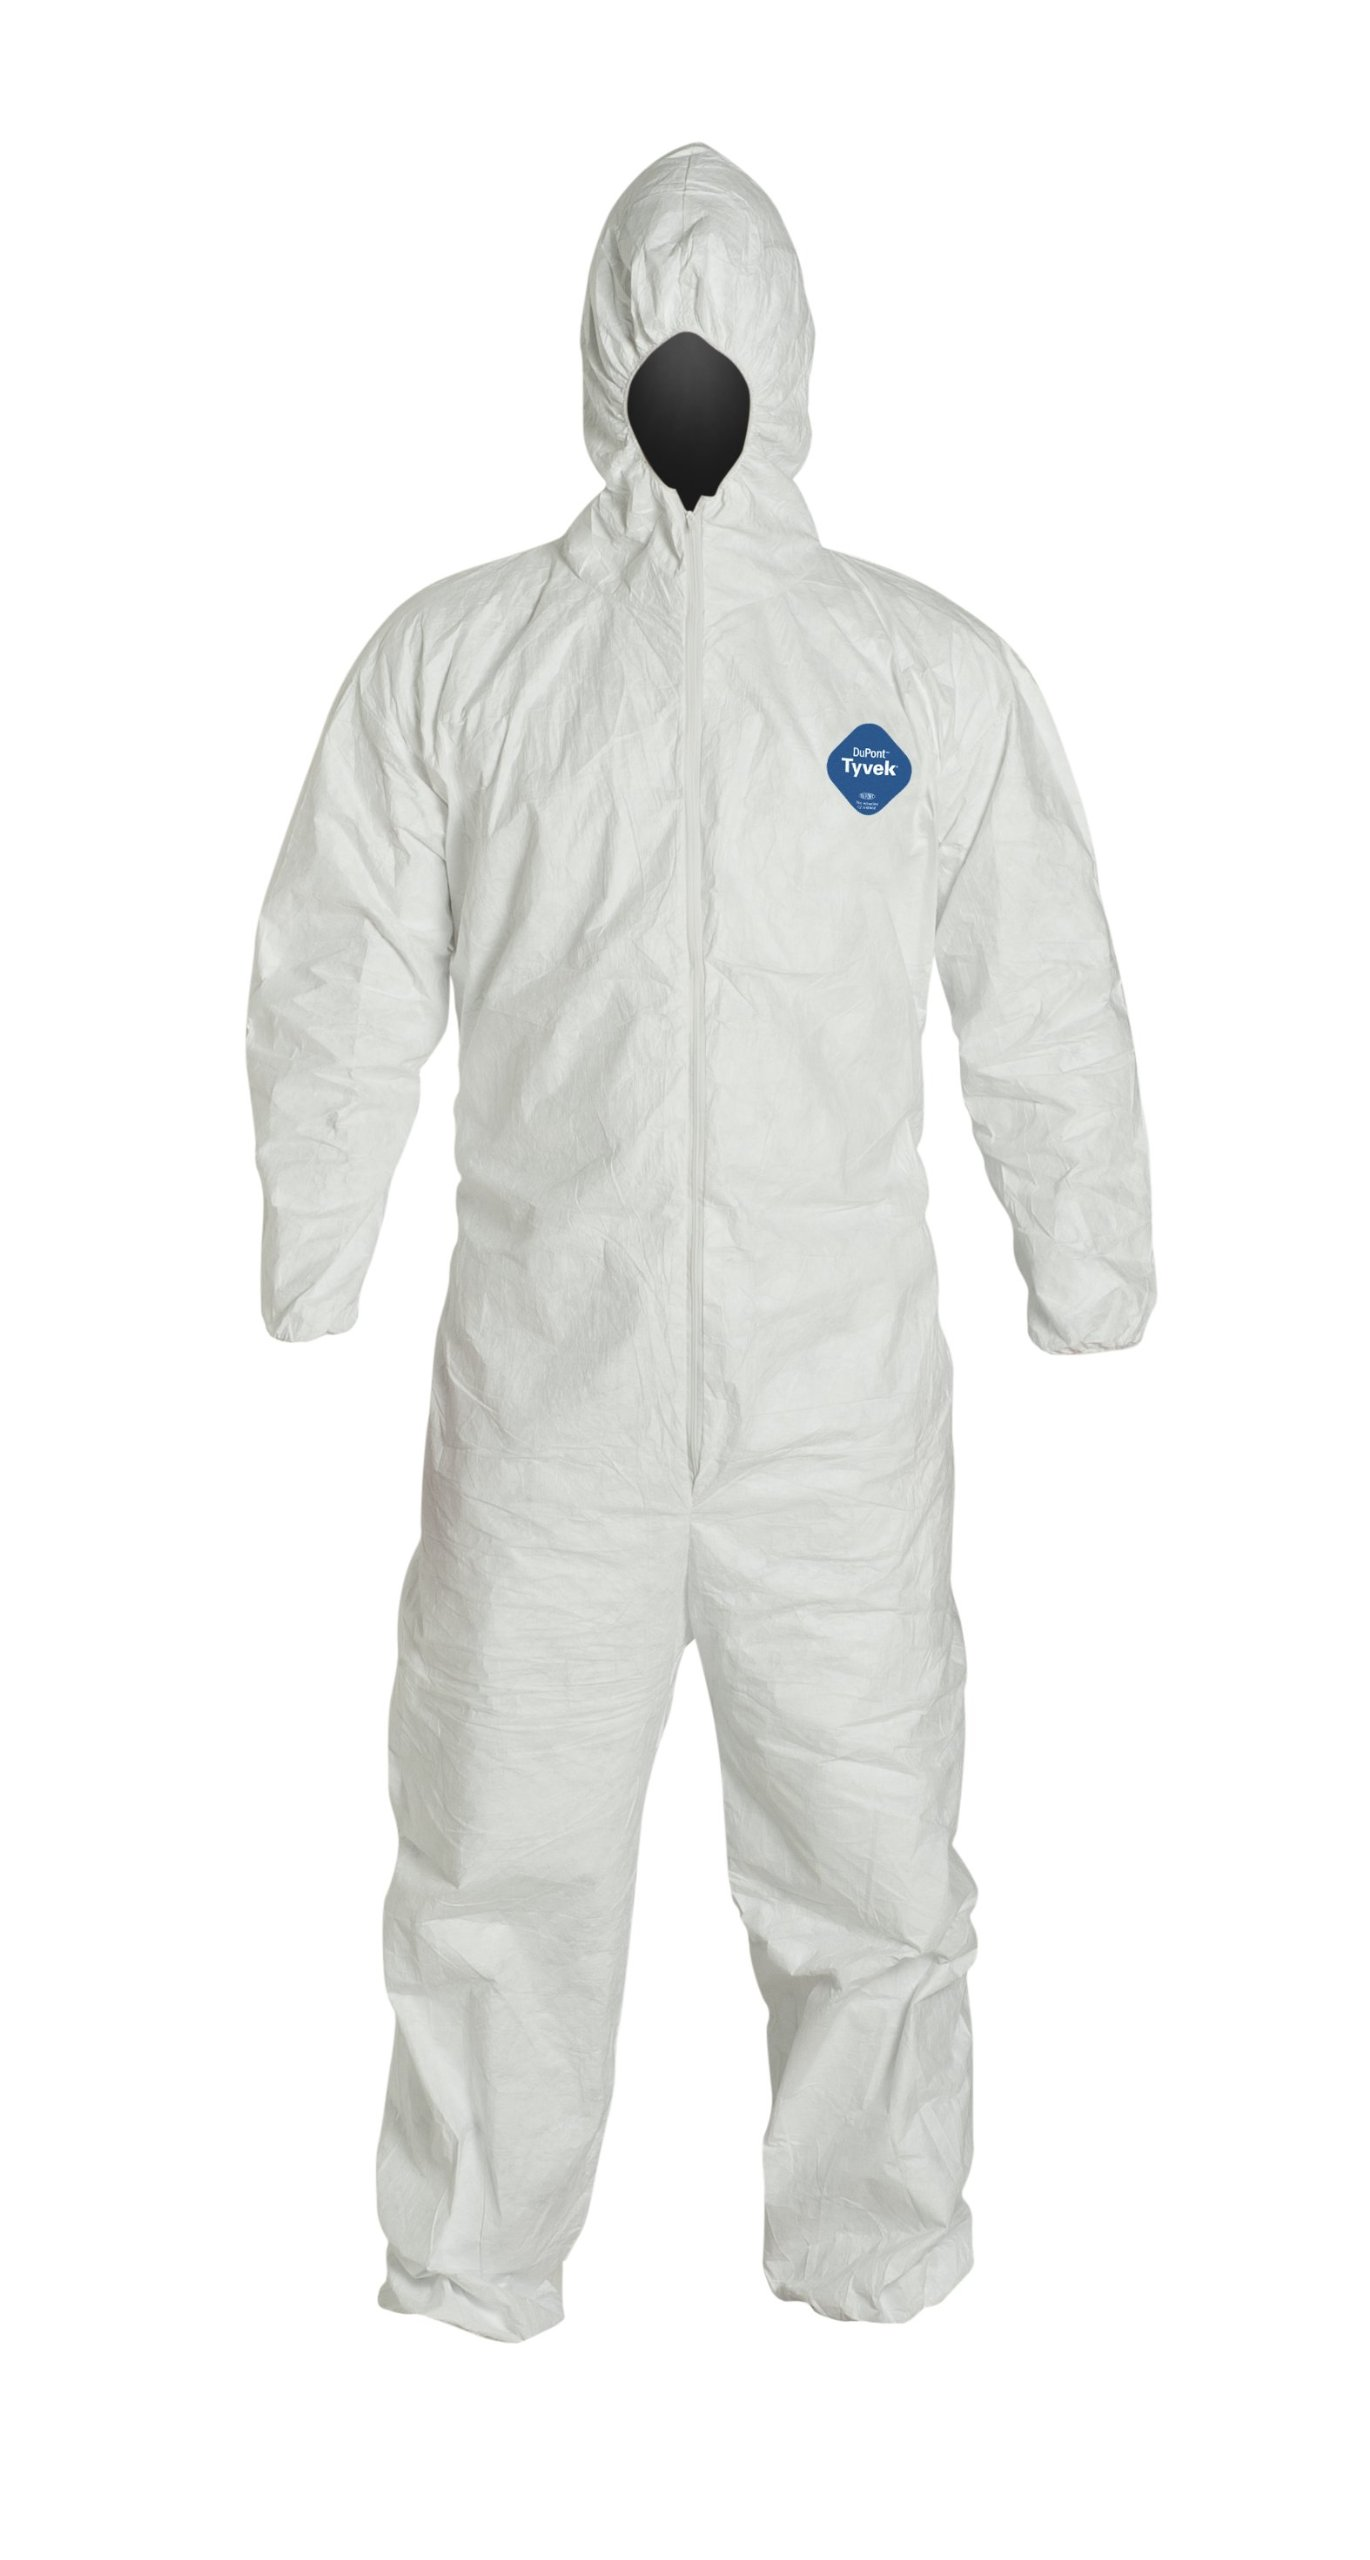 DuPont Tyvek TY127S Coverall with Respirator-Fit Hood, Disposable, Elastic Cuff